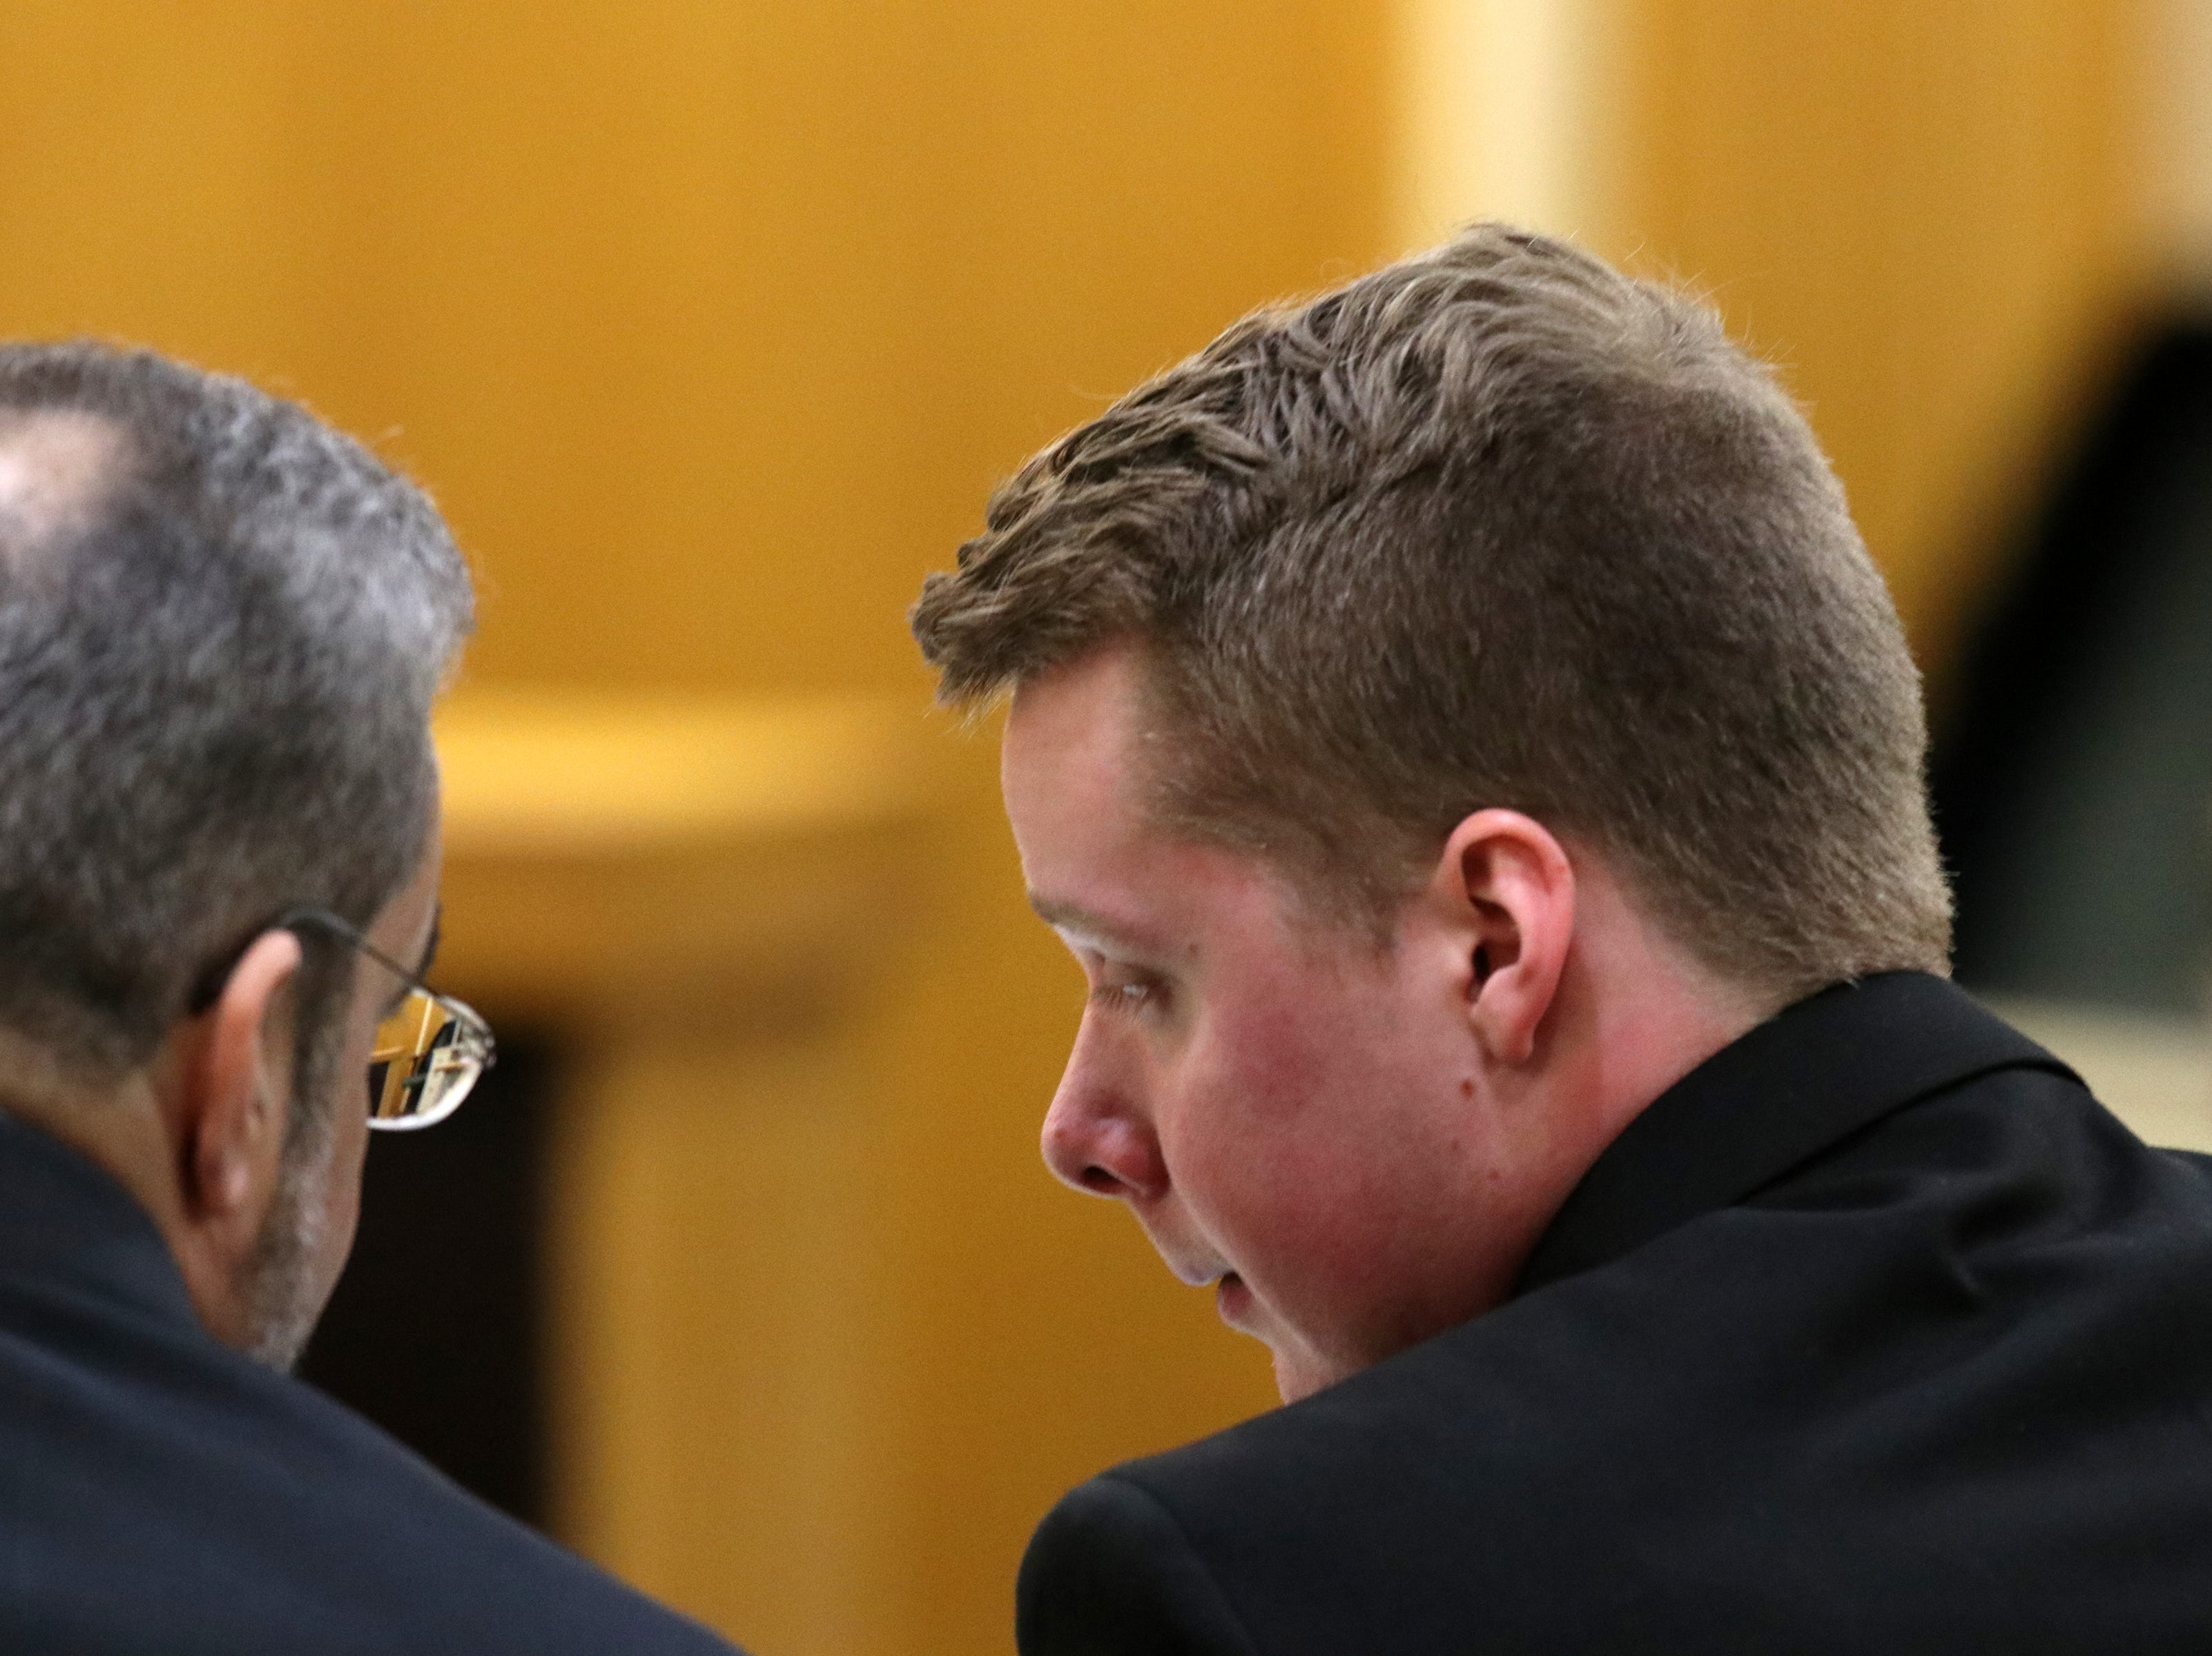 A teary-eyed Liam McAtasney, who is charged with the murder of former high school classmate, Sarah Stern, talks to his lawyer after former Brennen's Steakhouse co-worker Laura Carmody testifies during the second day of trial before Superior Court Judge Richard W. English at the Monmouth County Courthouse in Freehold, NJ Thursday January 24, 2019.